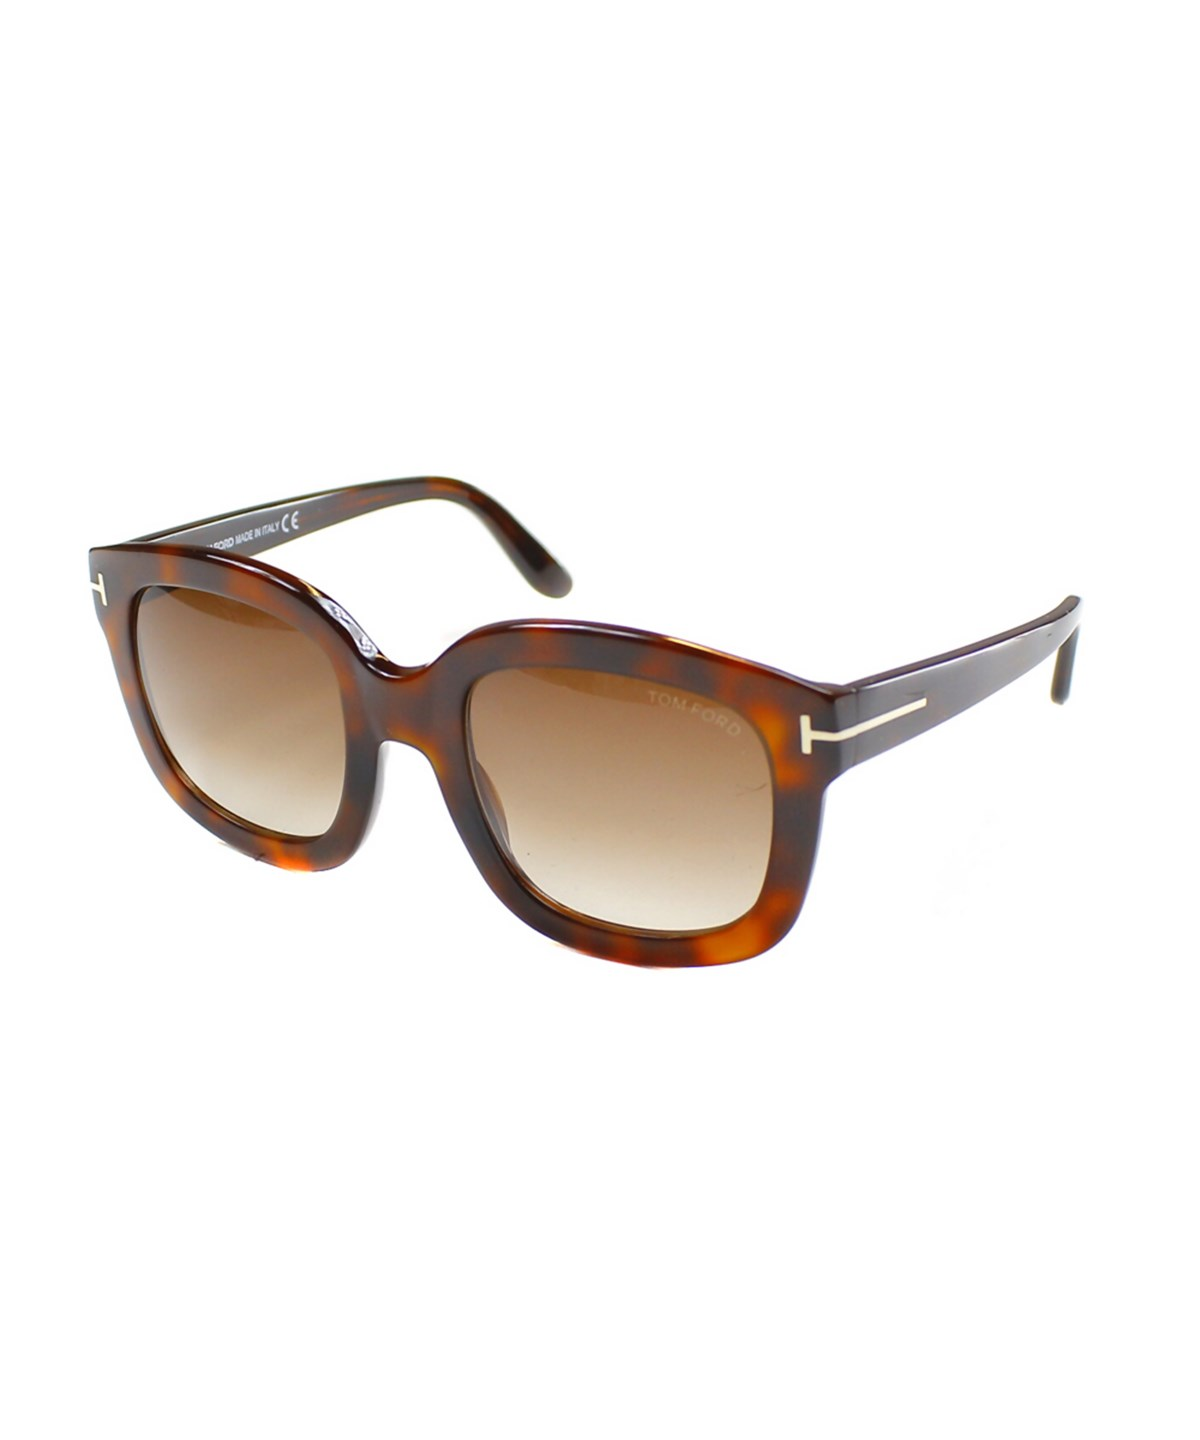 Tom Ford Christophe Rectangle Plastic Sunglasses In Brown